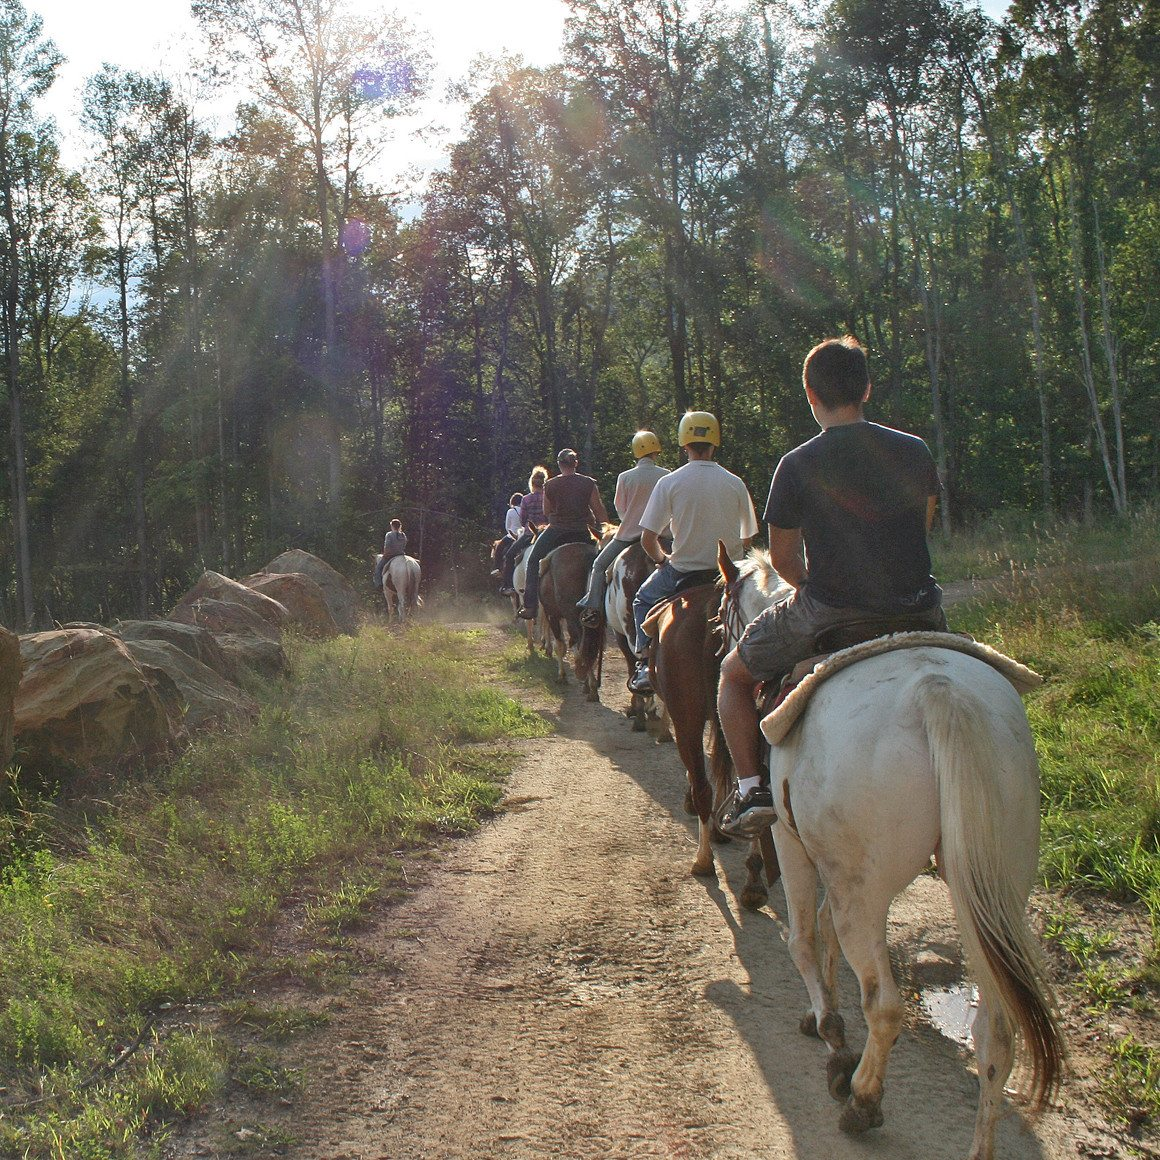 horseback riders make their way along a trail towards the woods